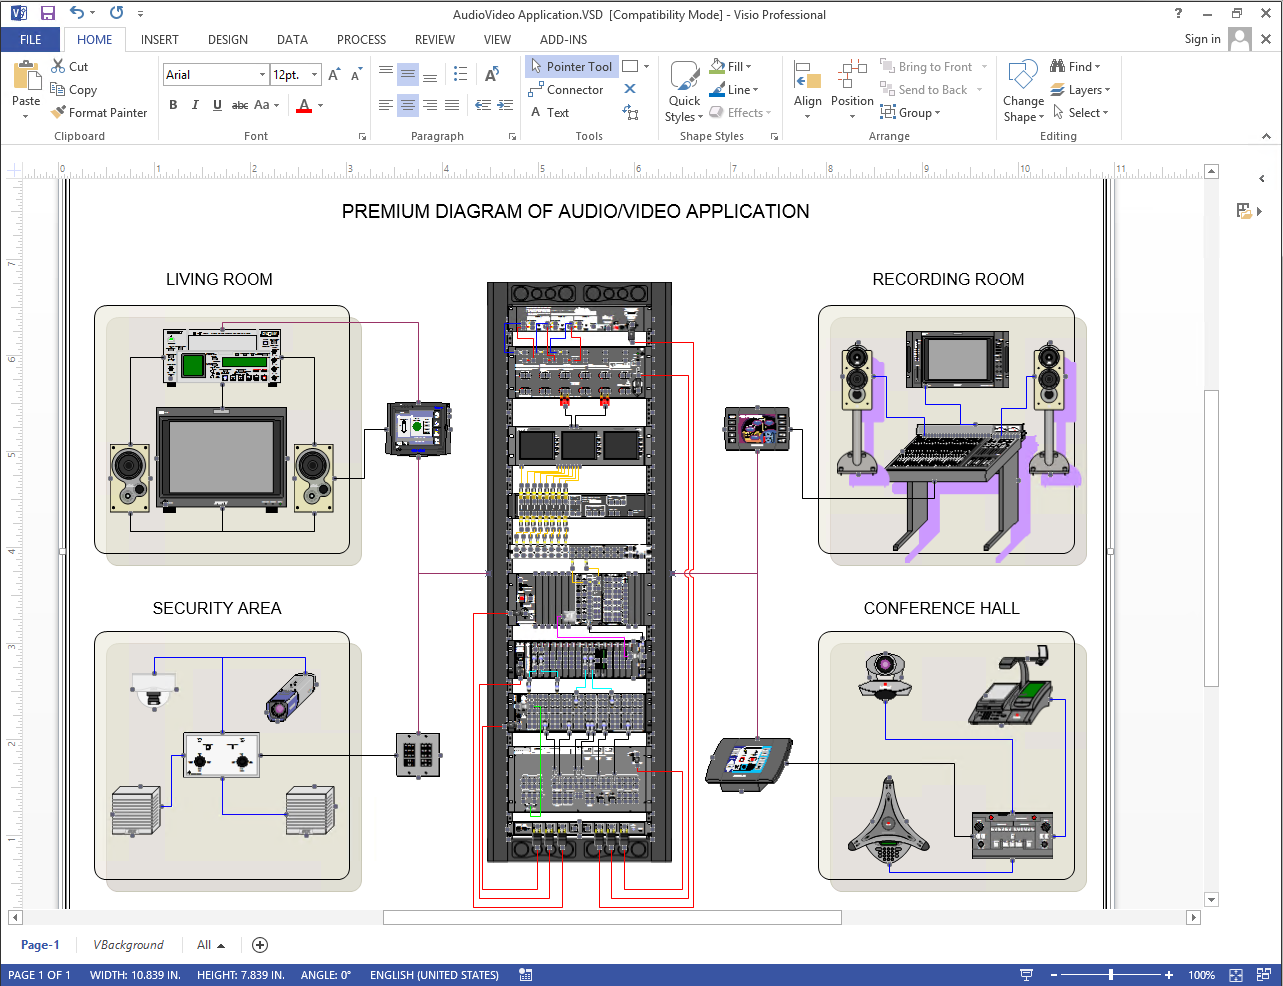 Diagram of audio video network using NetZoom Visio Stencils